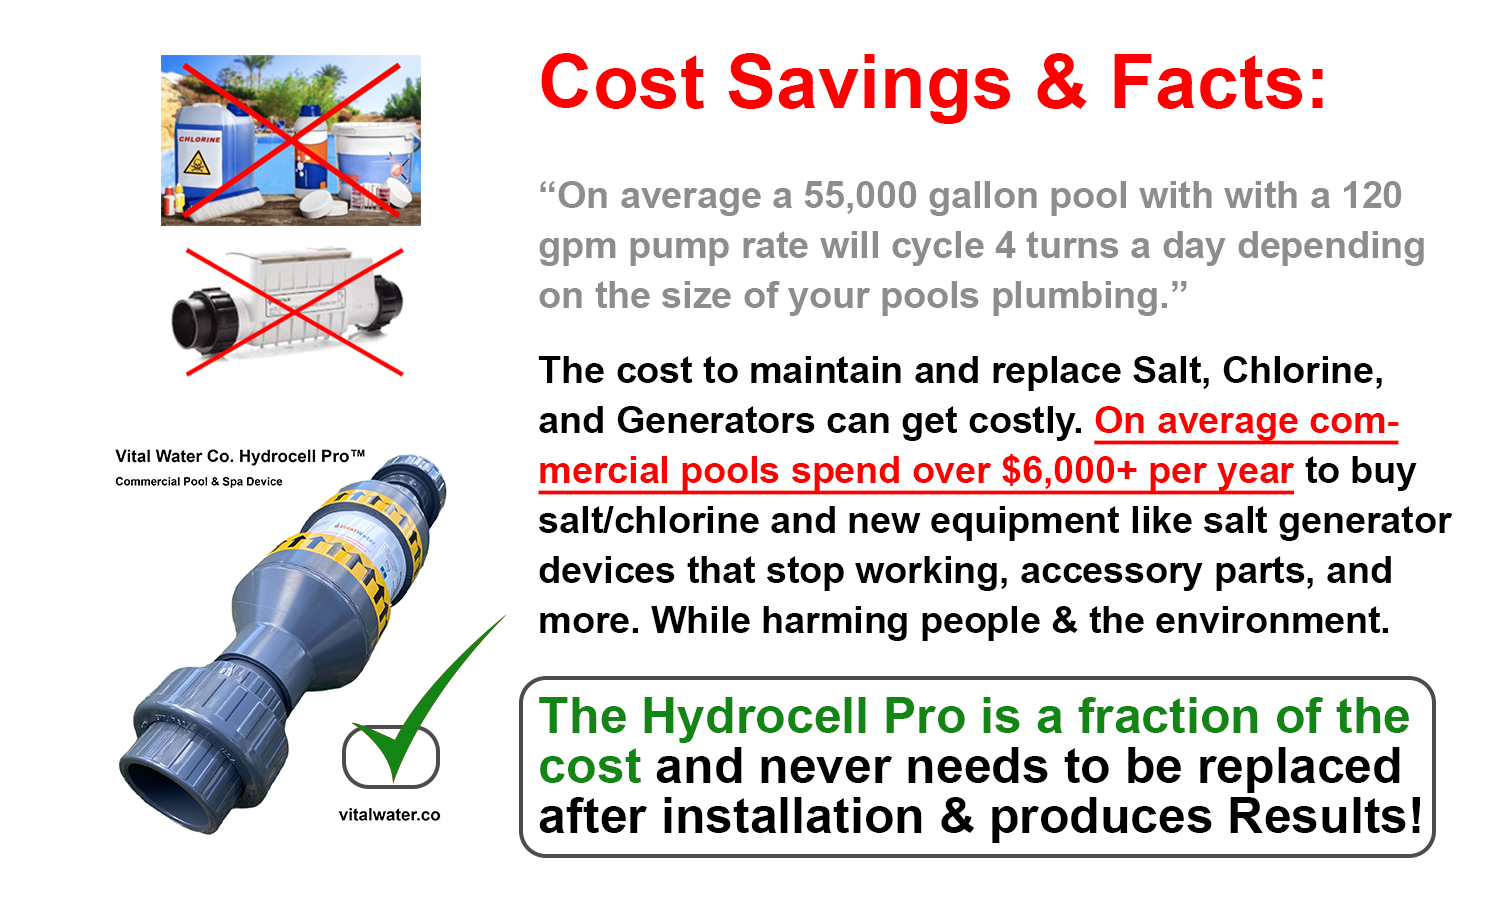 cost savings for pools and spas with vital water company hydrocell pro commercial pool device